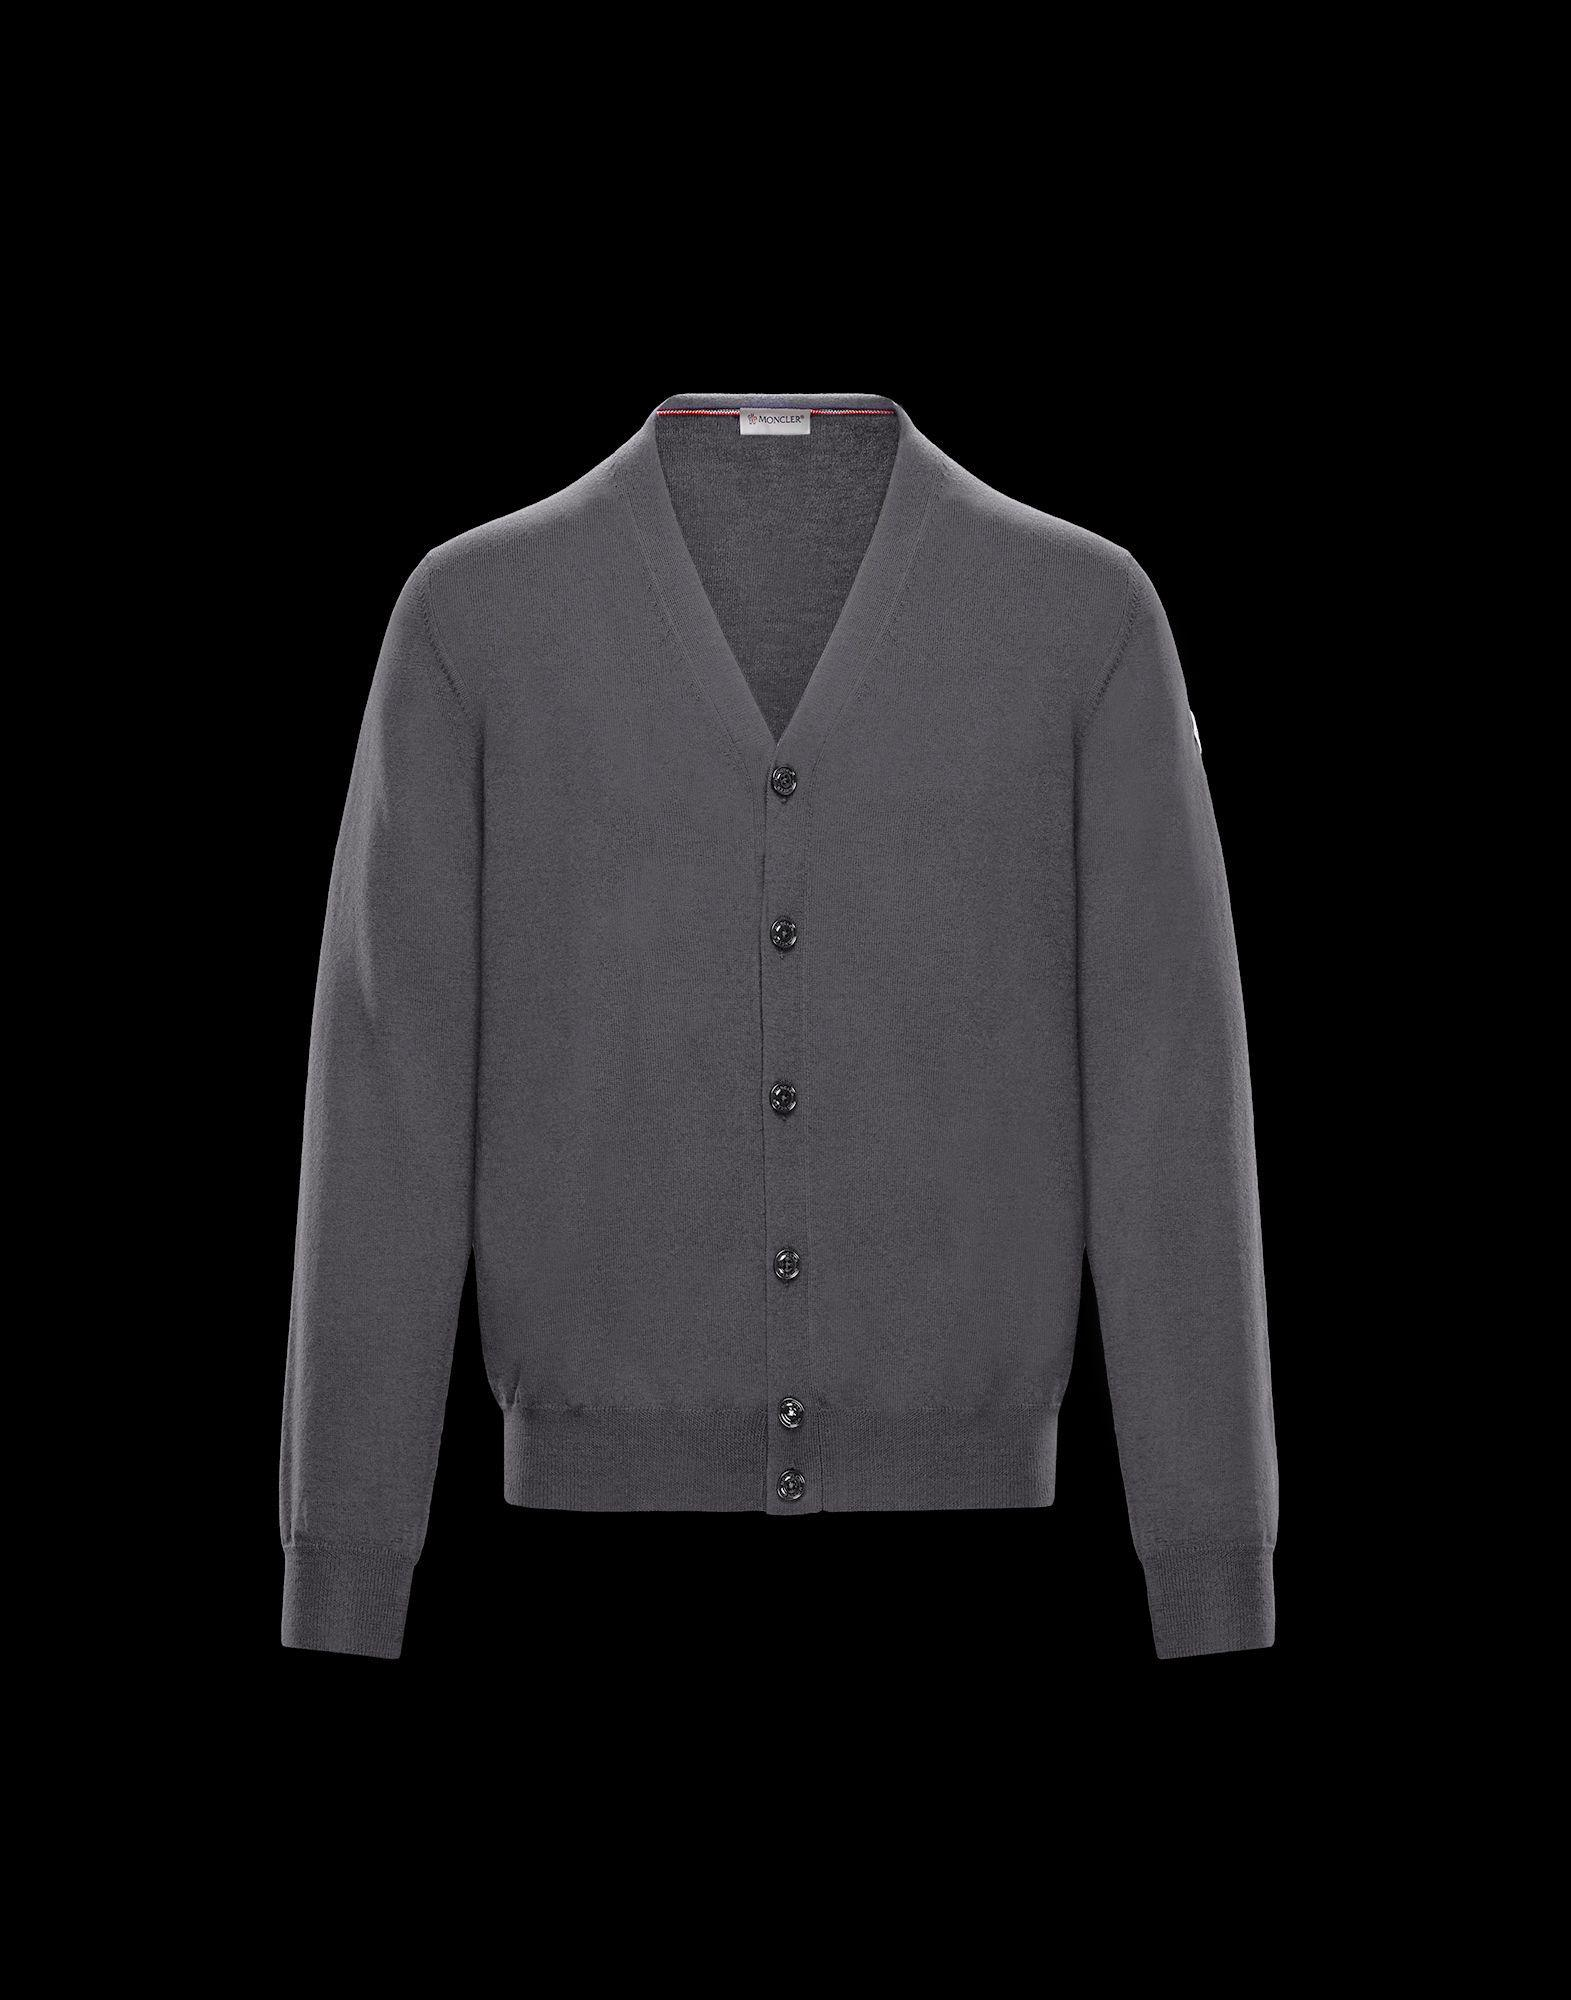 32a9c0da82c1 Lyst - Moncler Cardigan in Gray for Men